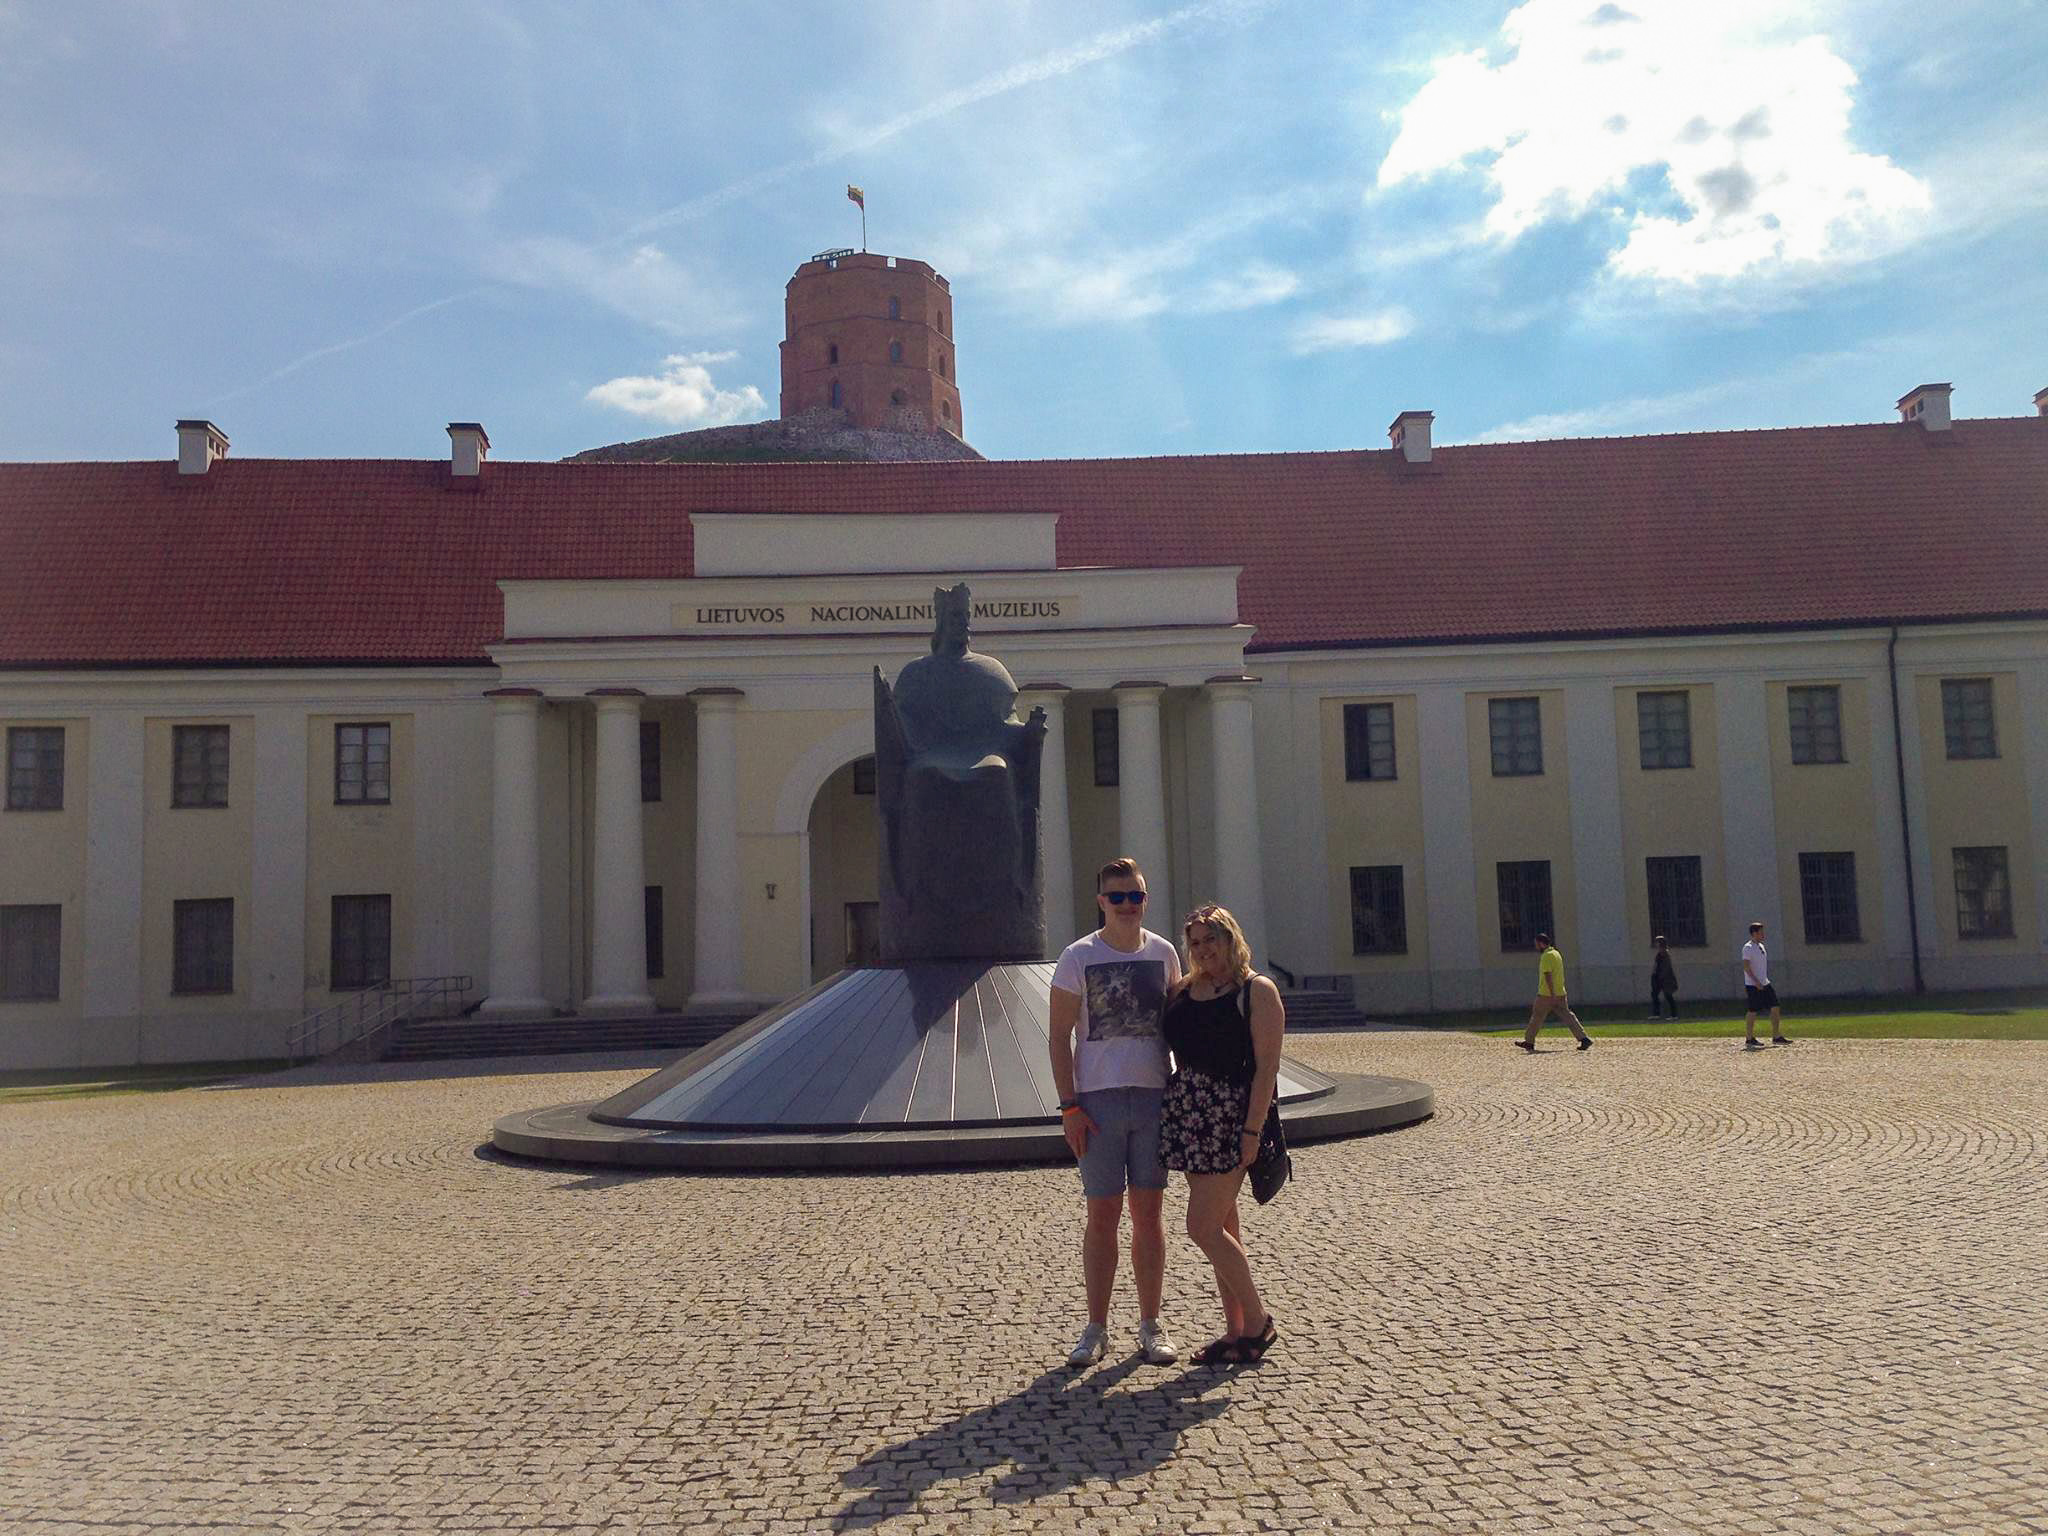 The first time I visited Vilnius was with my girlfriend. Here we are outside Lithuania's National Museum, which sits at the foot of Castle Hill.